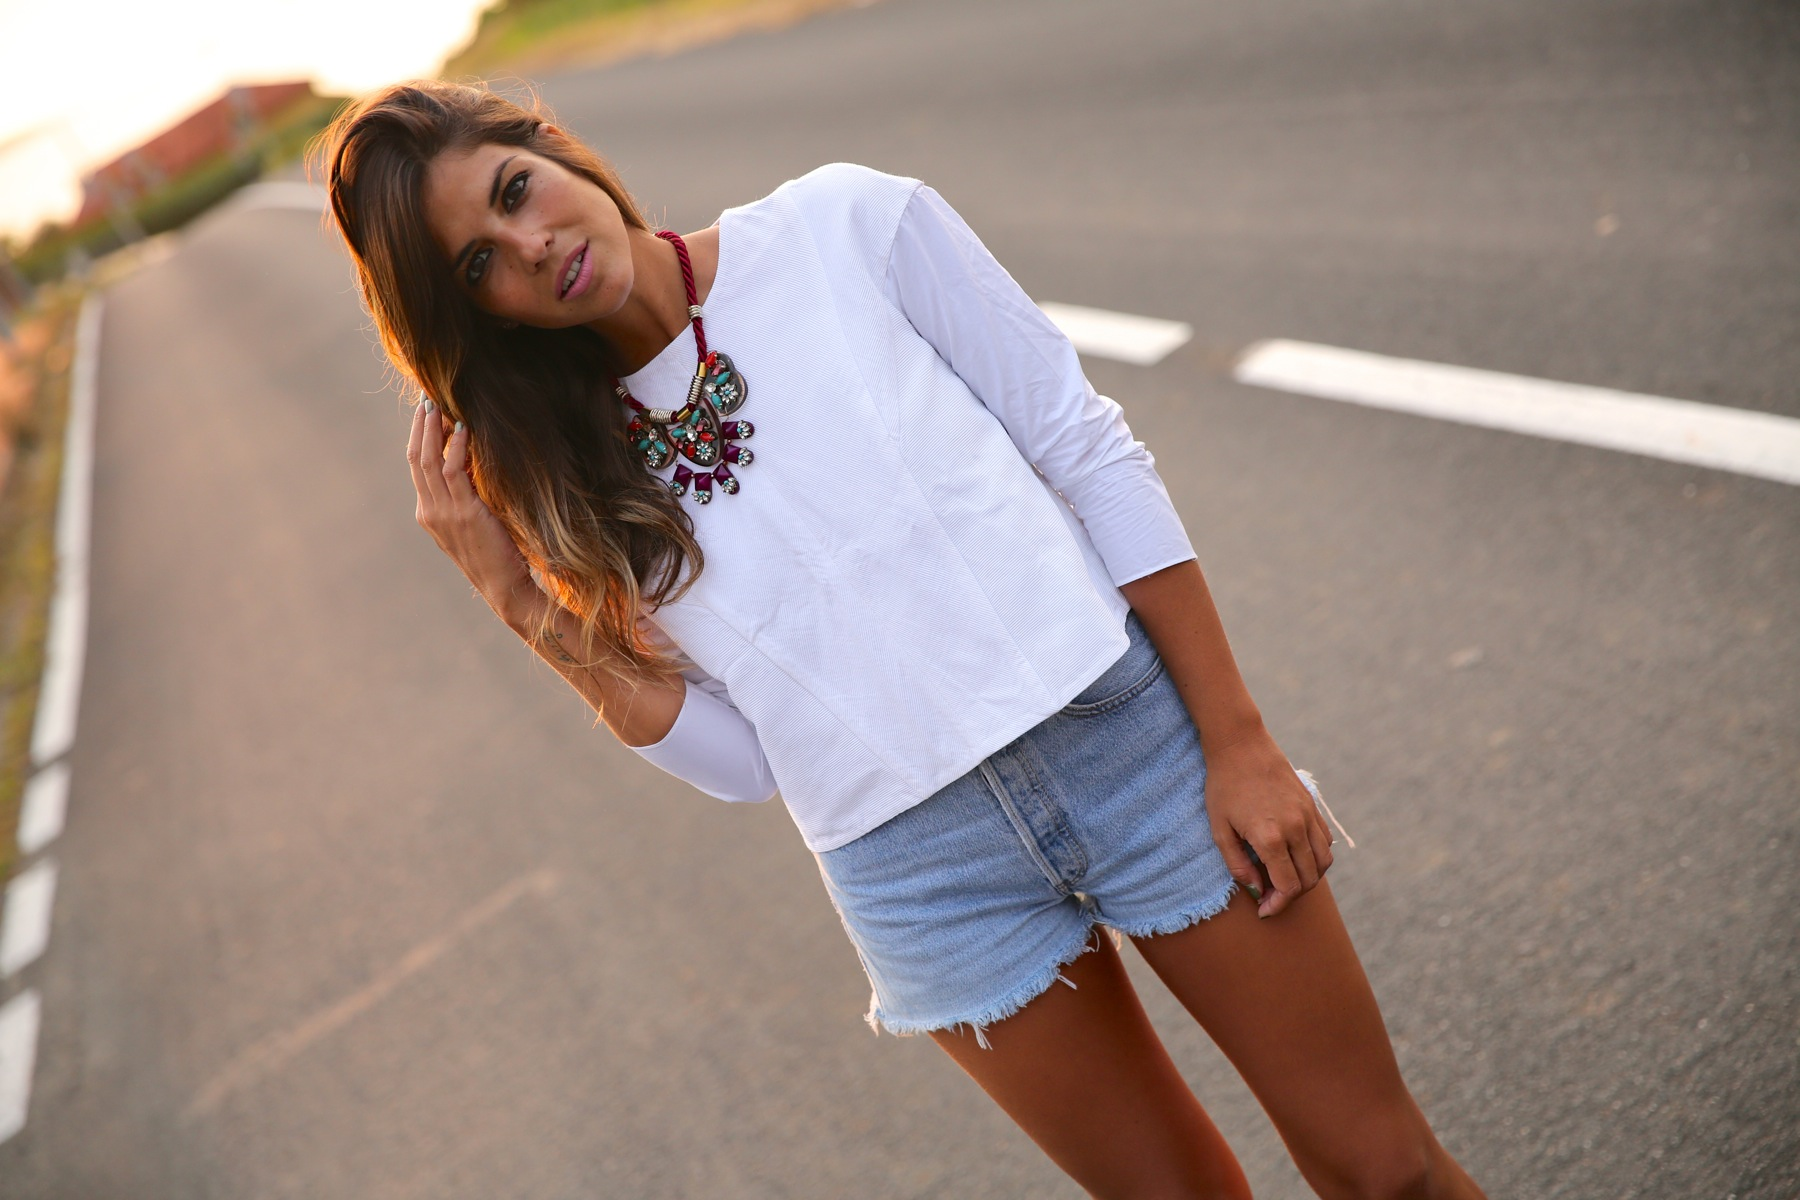 trendy_taste-look-outfit-street_style-ootd-blog-blogger-fashion_spain-moda_españa-coach-silver_sandals-sandalias_plata-white_top-top_blanco-levi's-denim_shorts-shorts_vaqueros-8